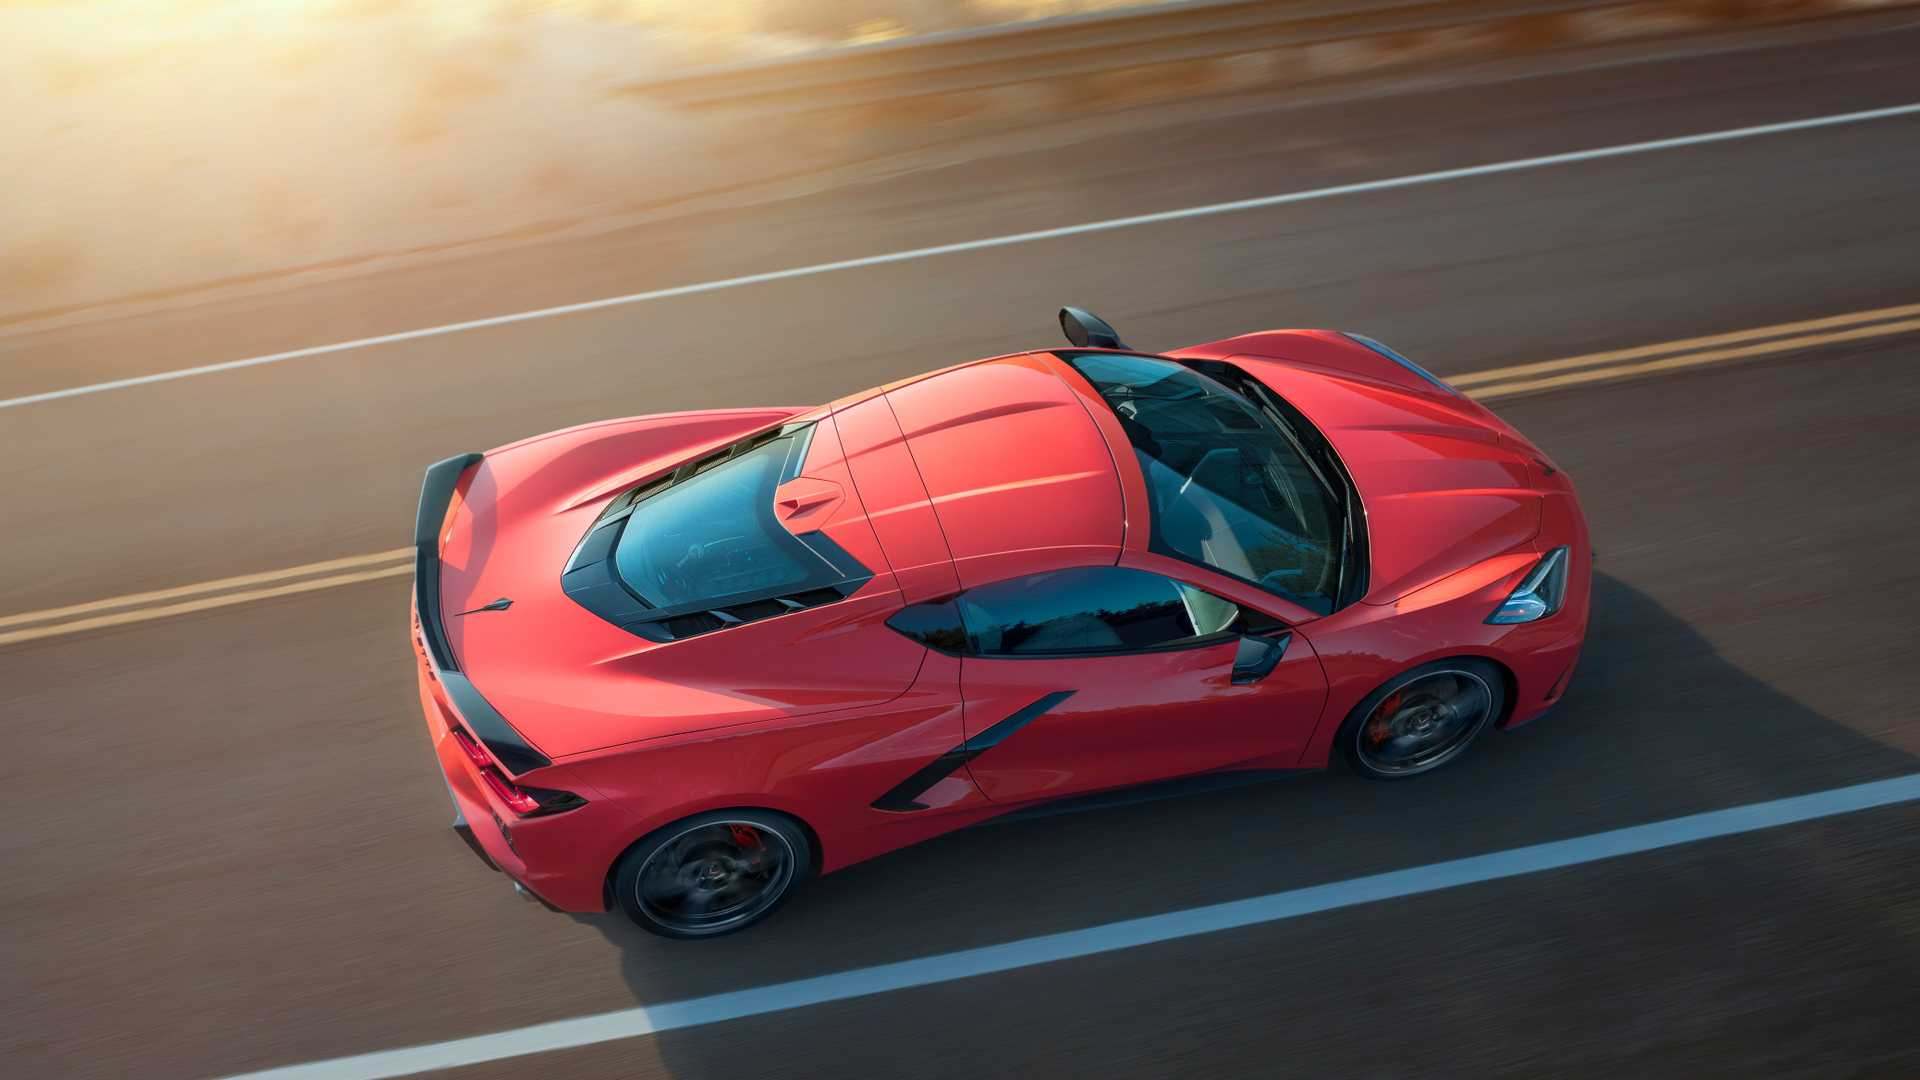 2020 Chevrolet Corvette C8 Stingray Top Wallpapers (1)